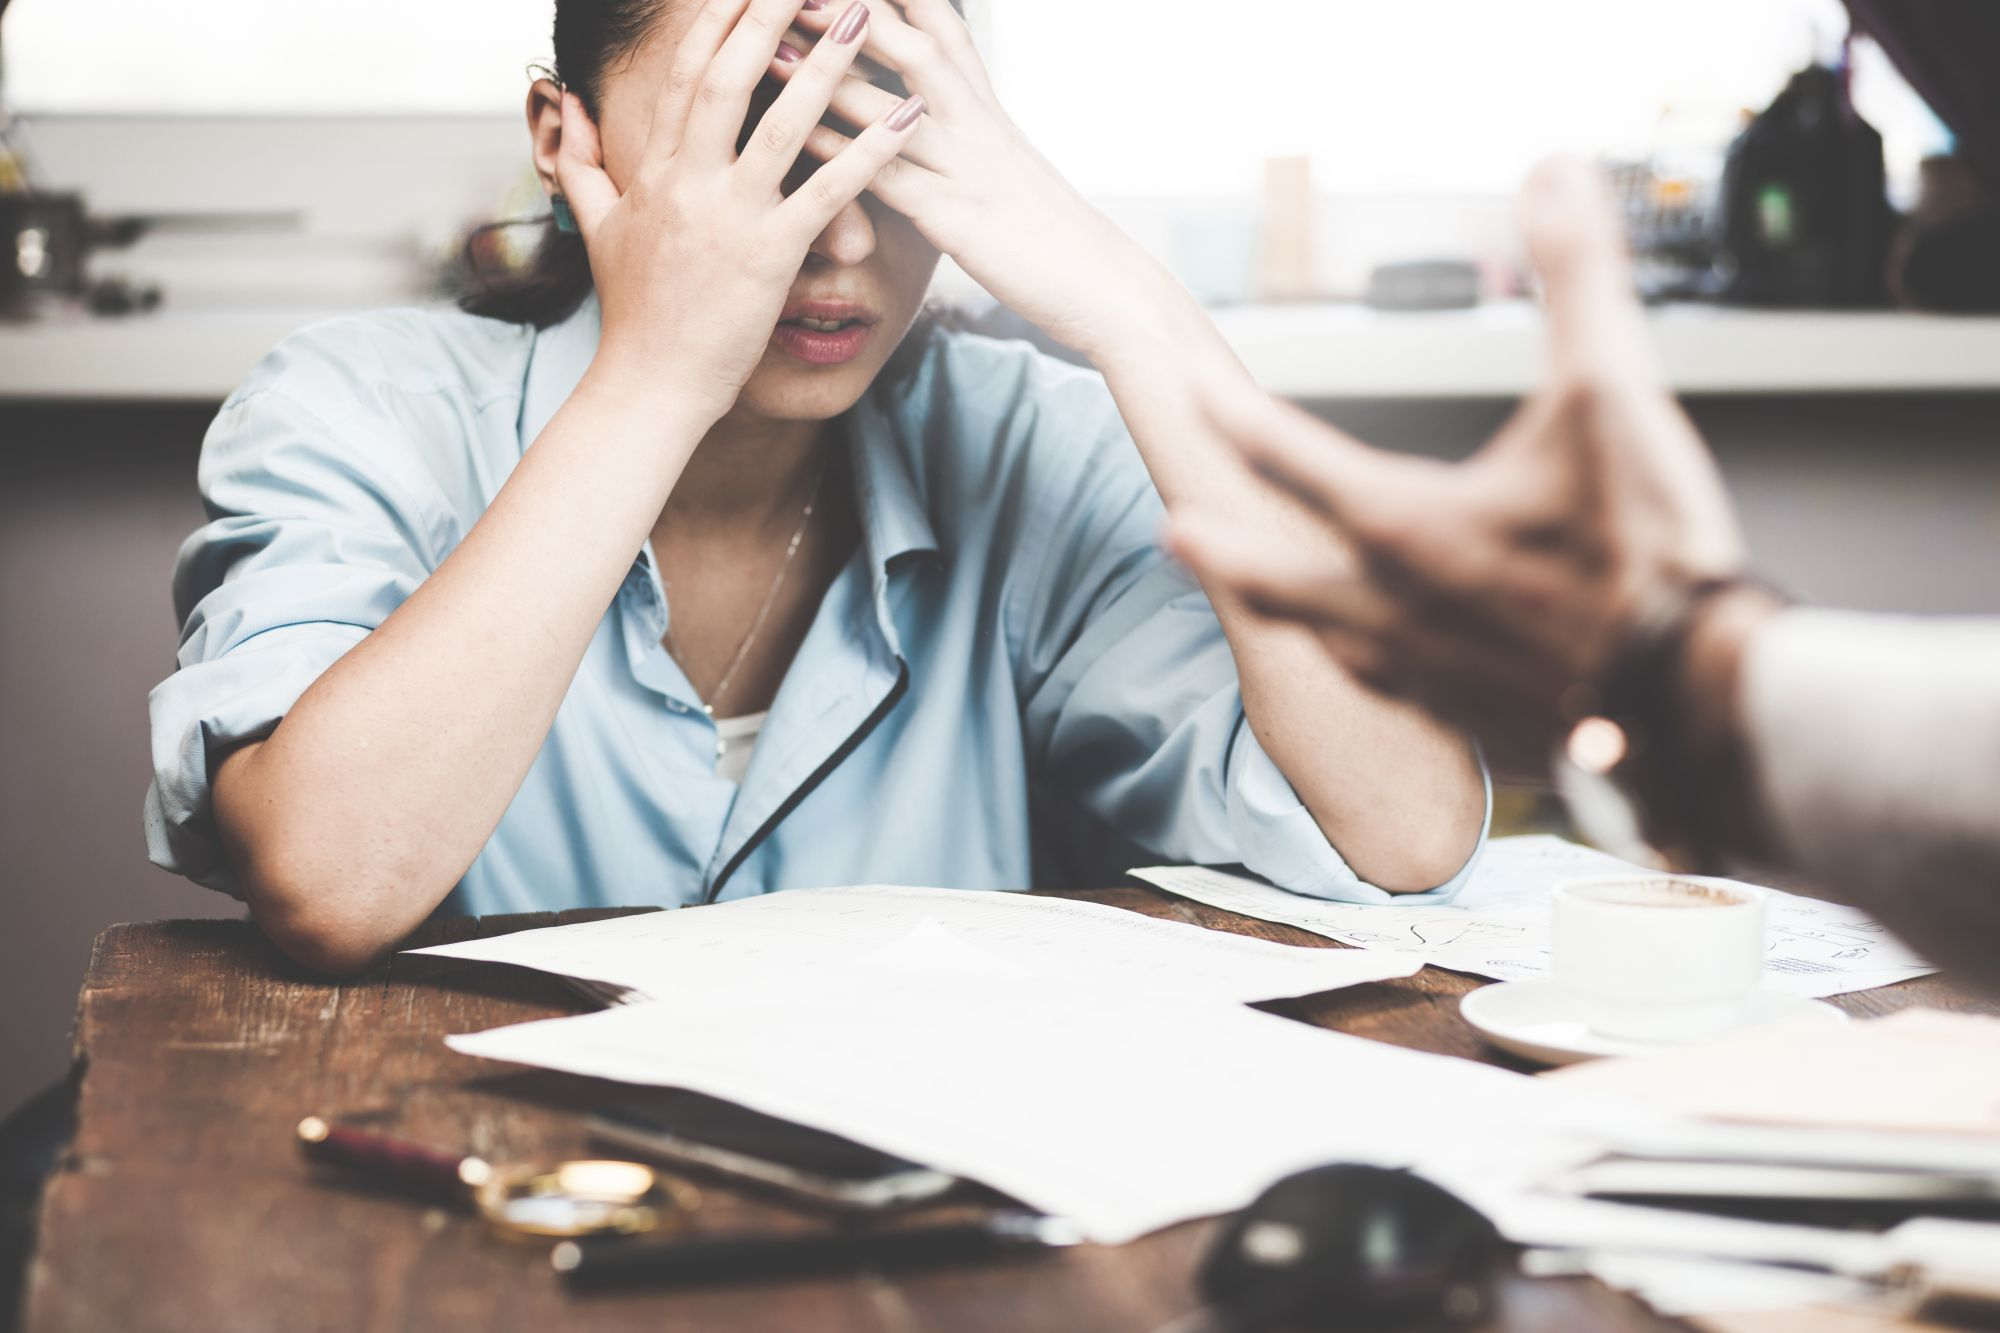 Podcast: Workplace bullying in the #MeToo era